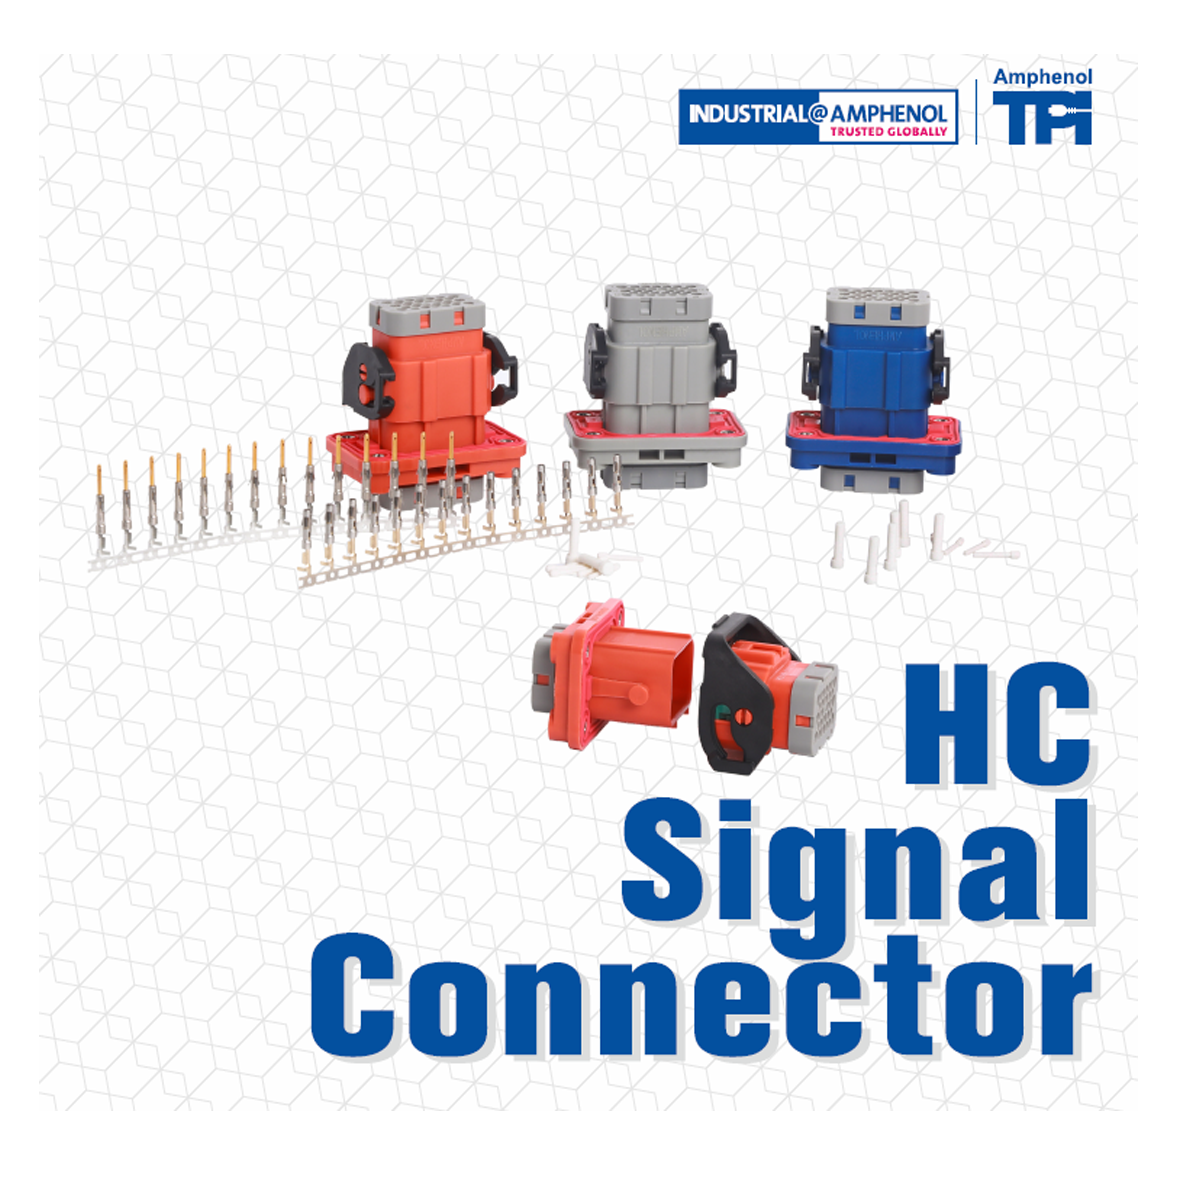 HC Signal Connector